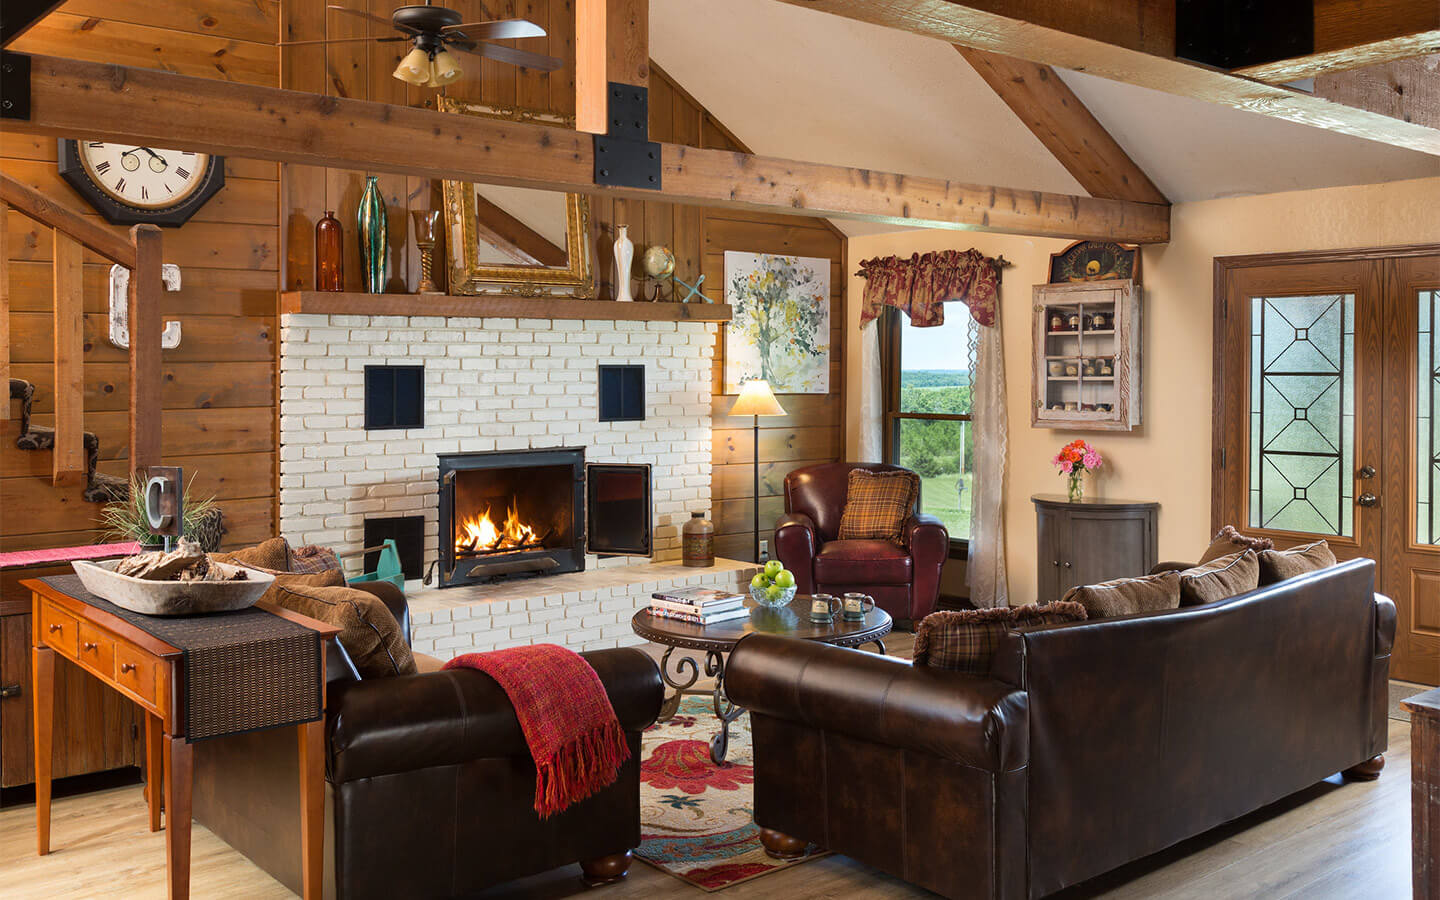 Inviting common spaces at Cedar Crest Lodge